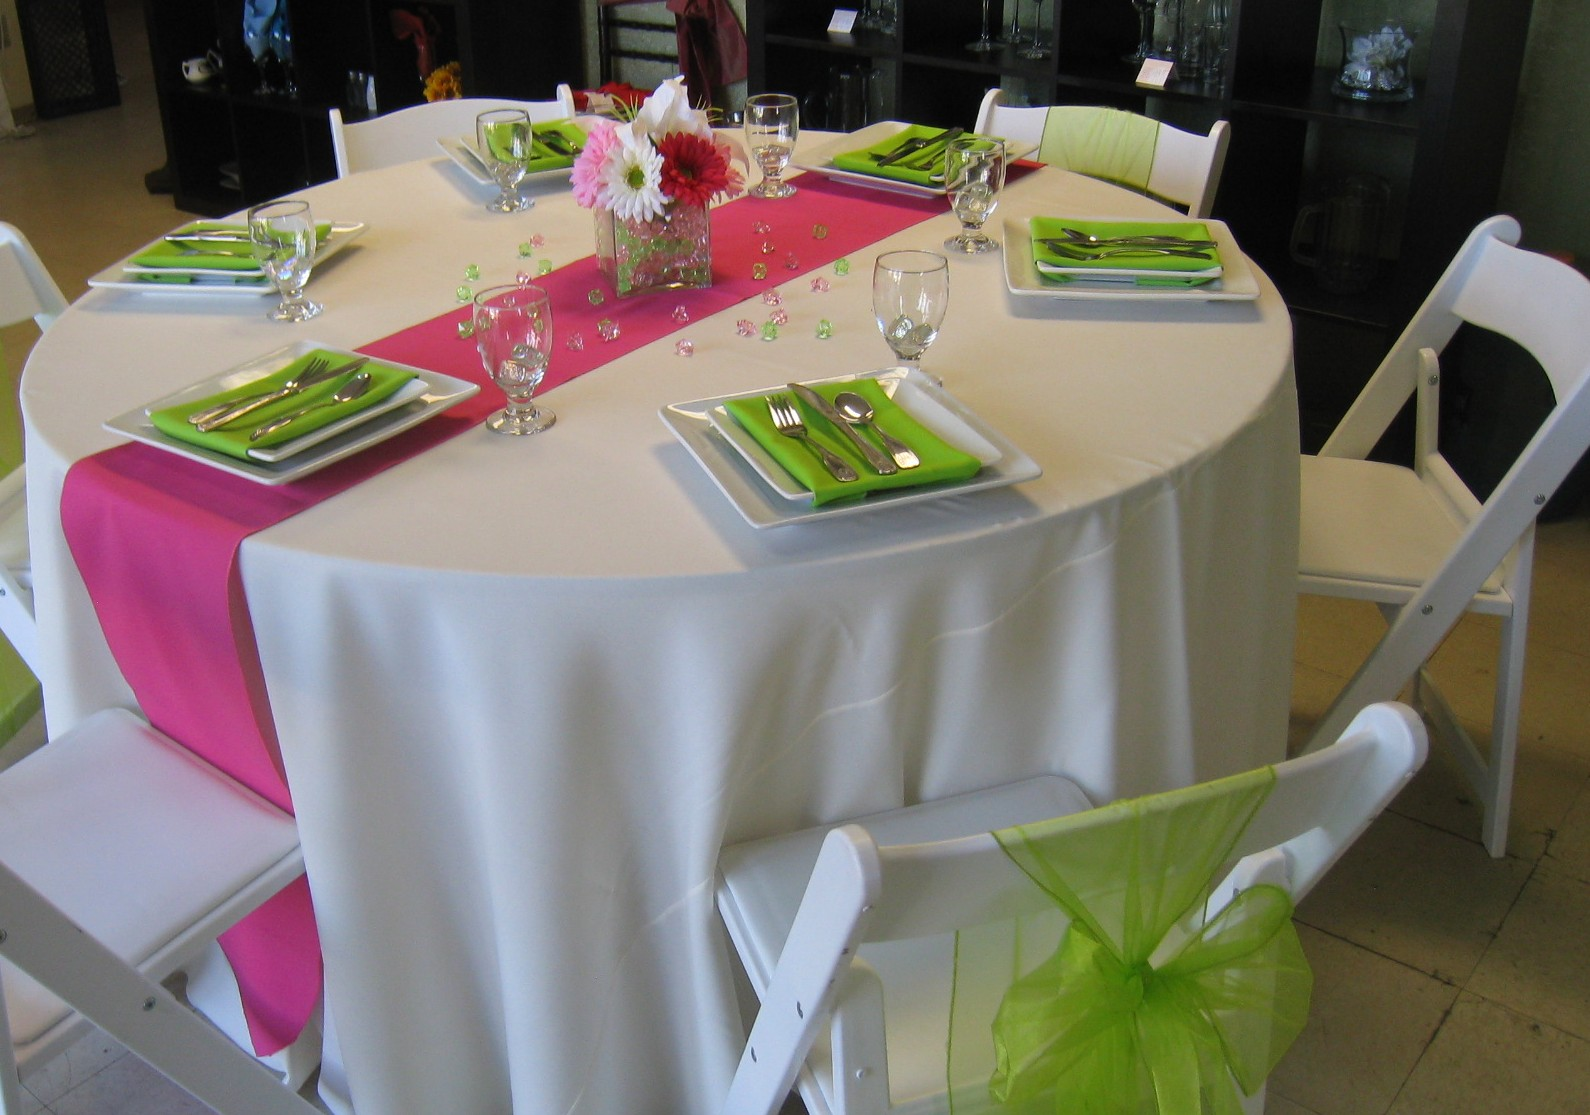 Party productions spring table ideas Table decoration ideas for parties